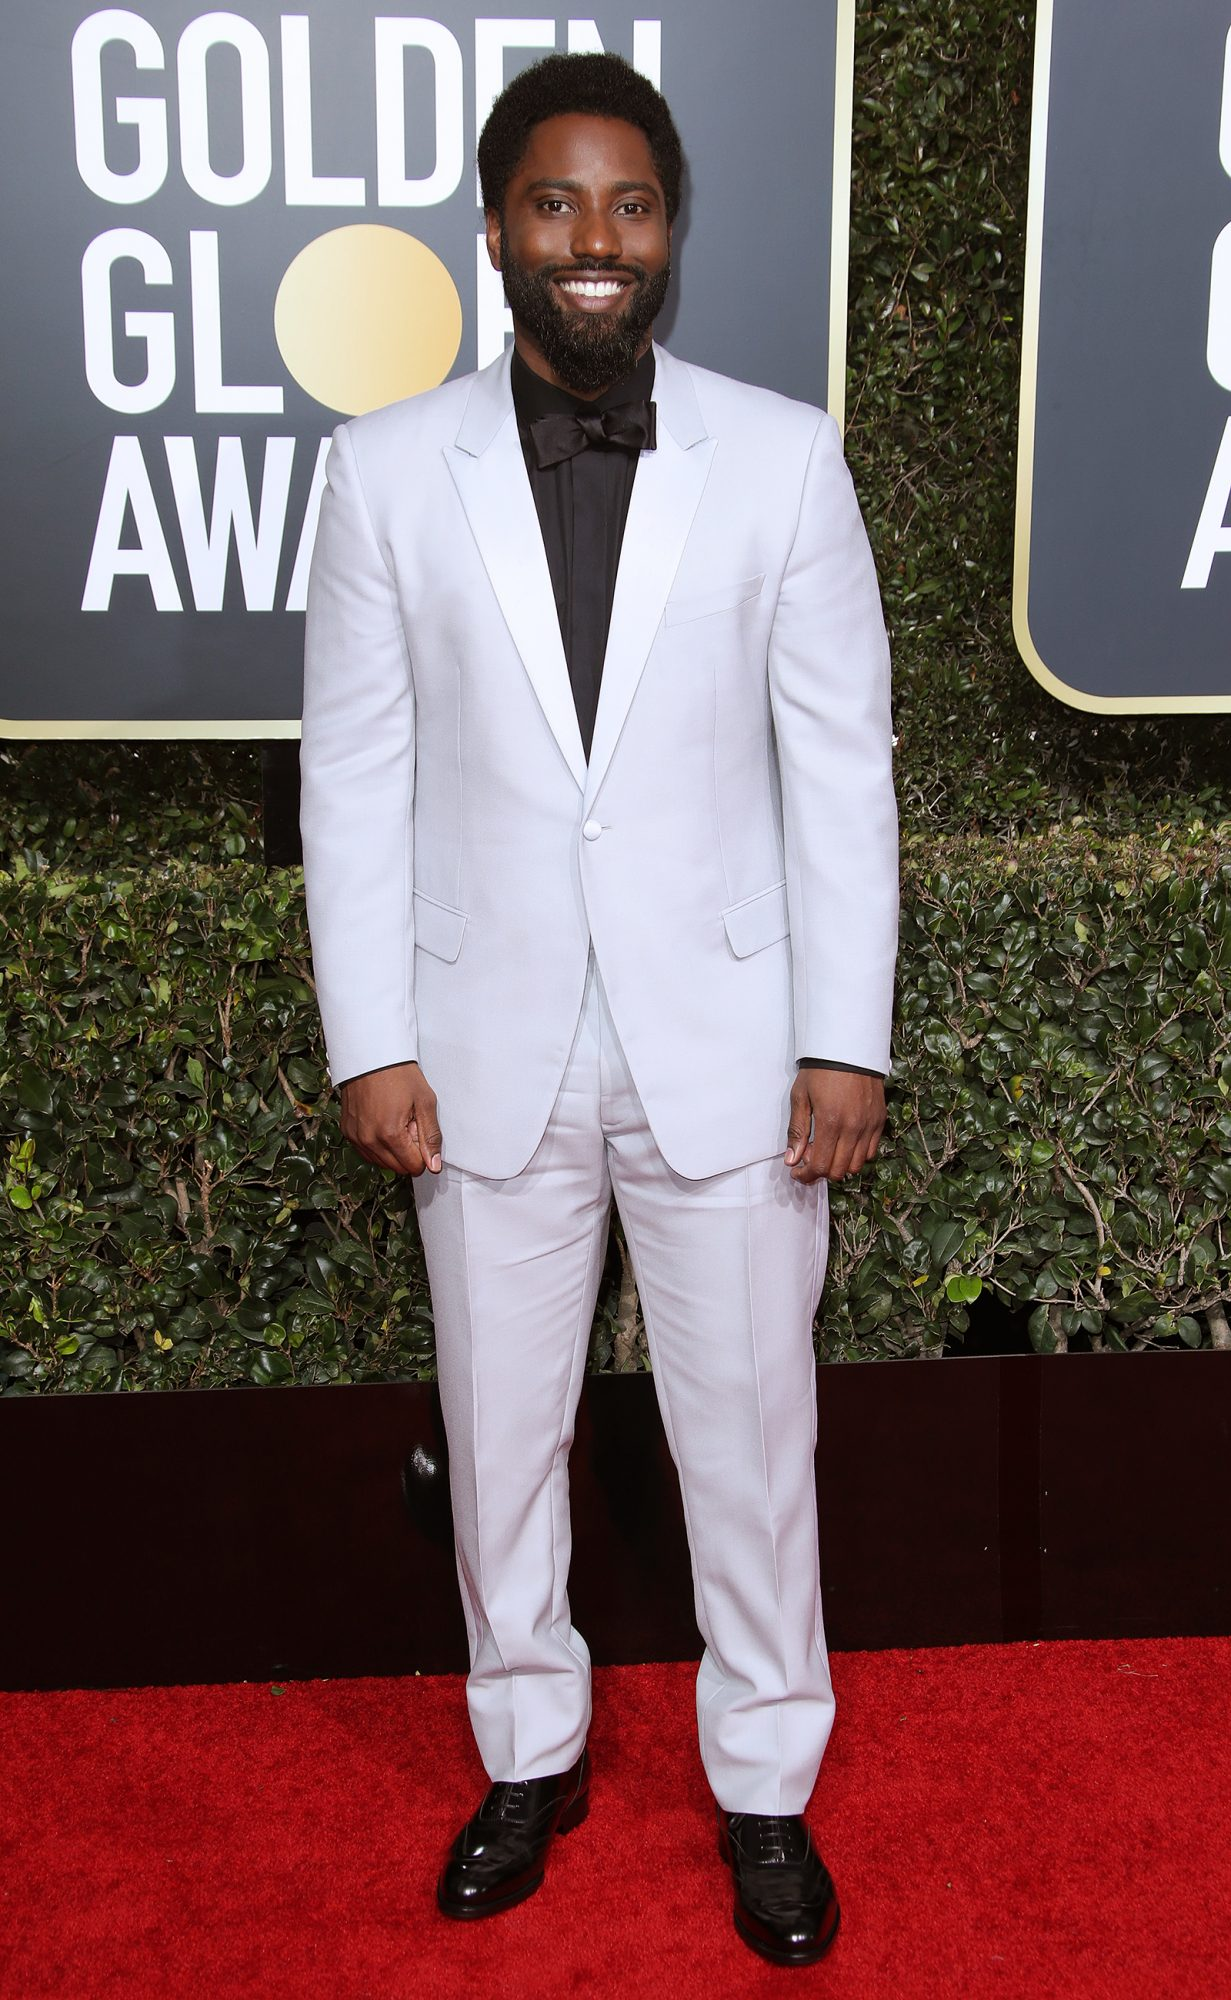 76th Annual Golden Globe Awards, Arrivals, Los Angeles, USA - 06 Jan 2019